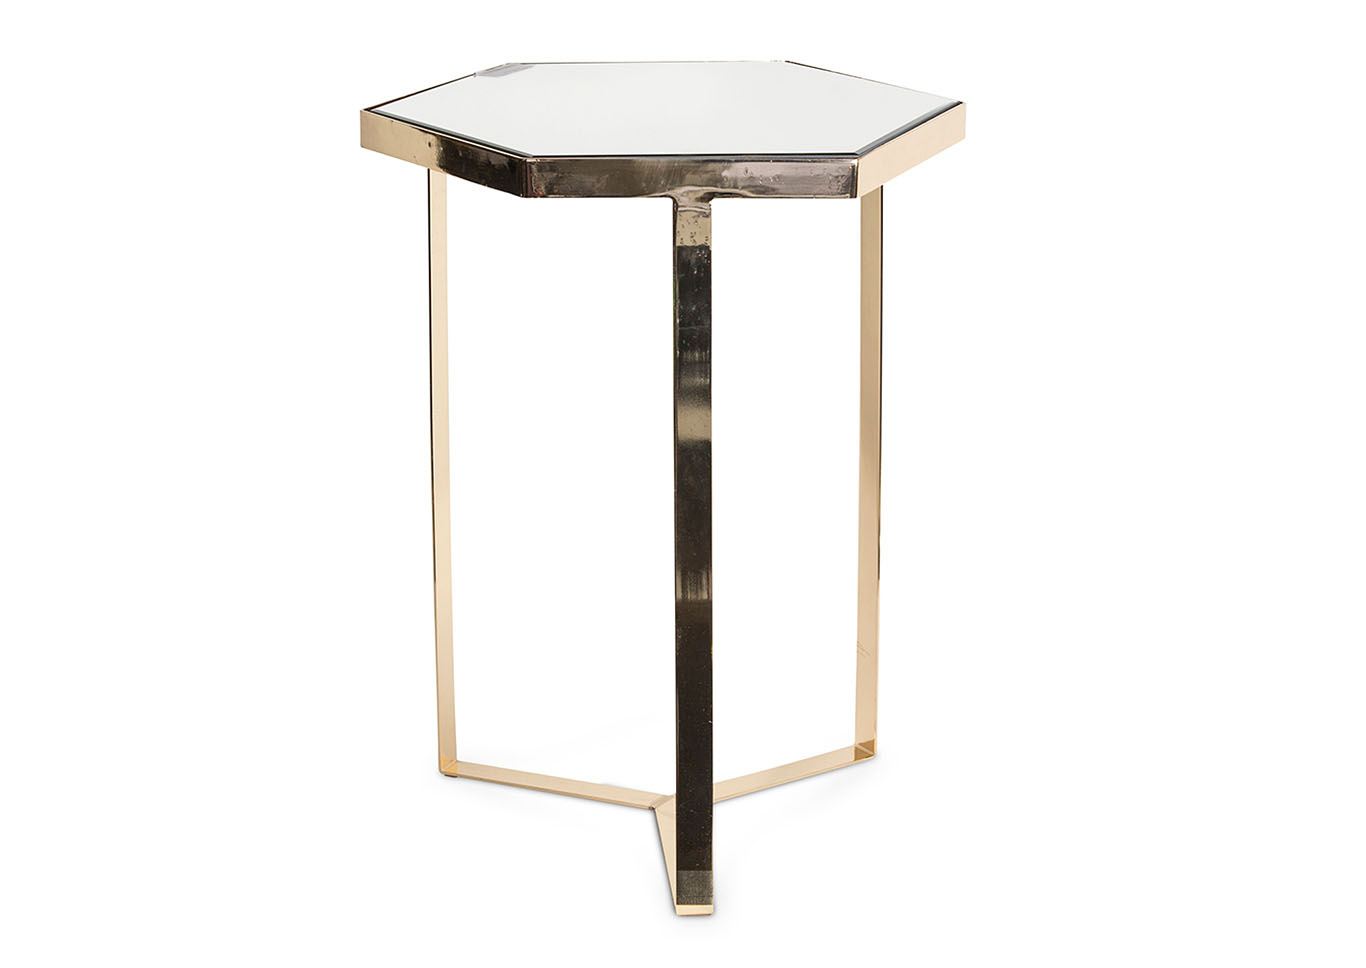 watts furniture montreal end table mntrl glass agate accent aico vintage oak side kitchen cupboards gold wood coffee with charging station round nesting tables dale tiffany